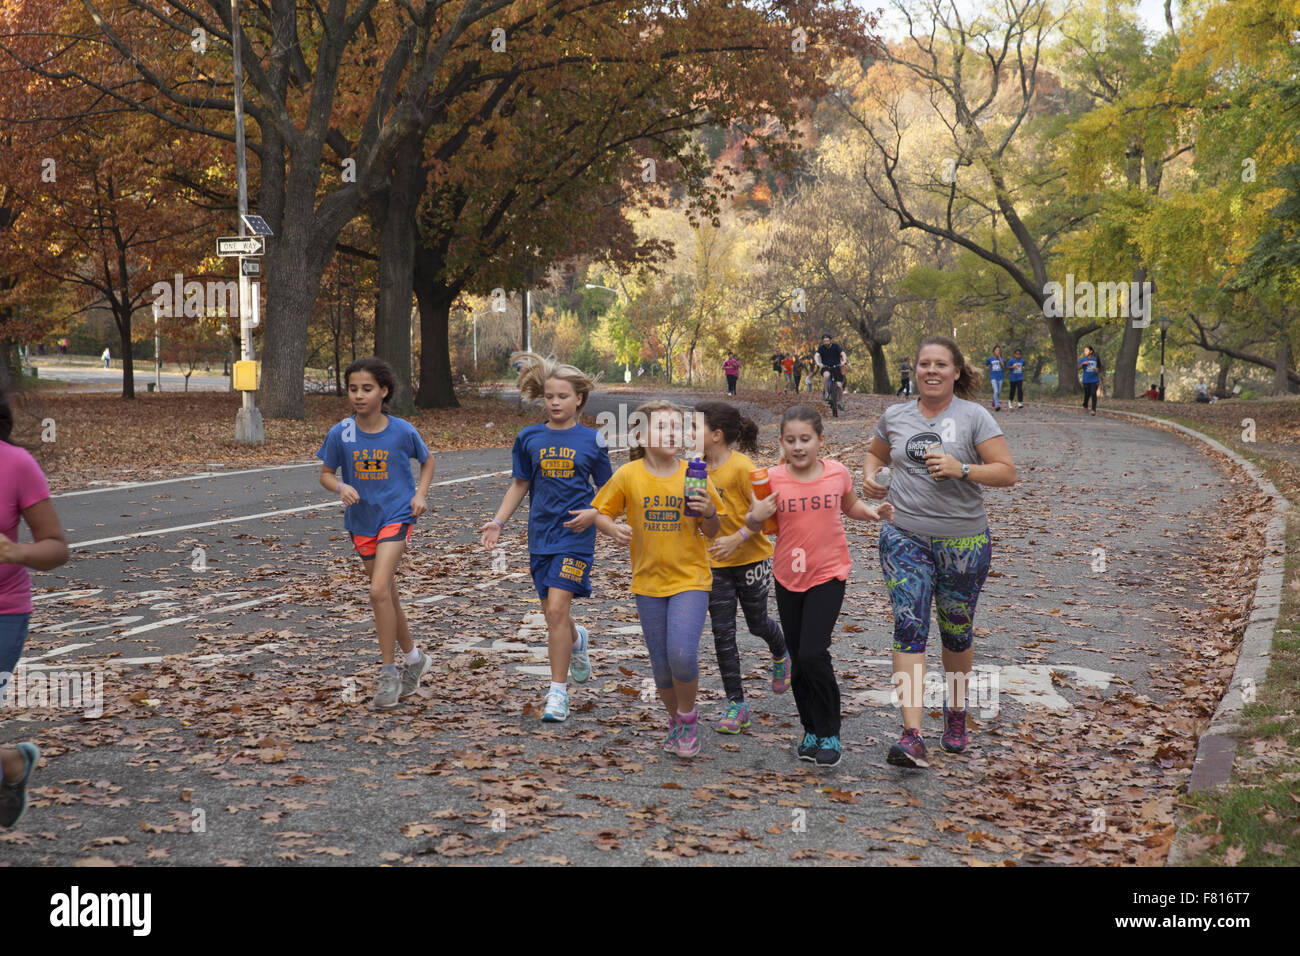 Local elementary school children jogging together on the road in Prospect Park, Brooklyn, New York. - Stock Image